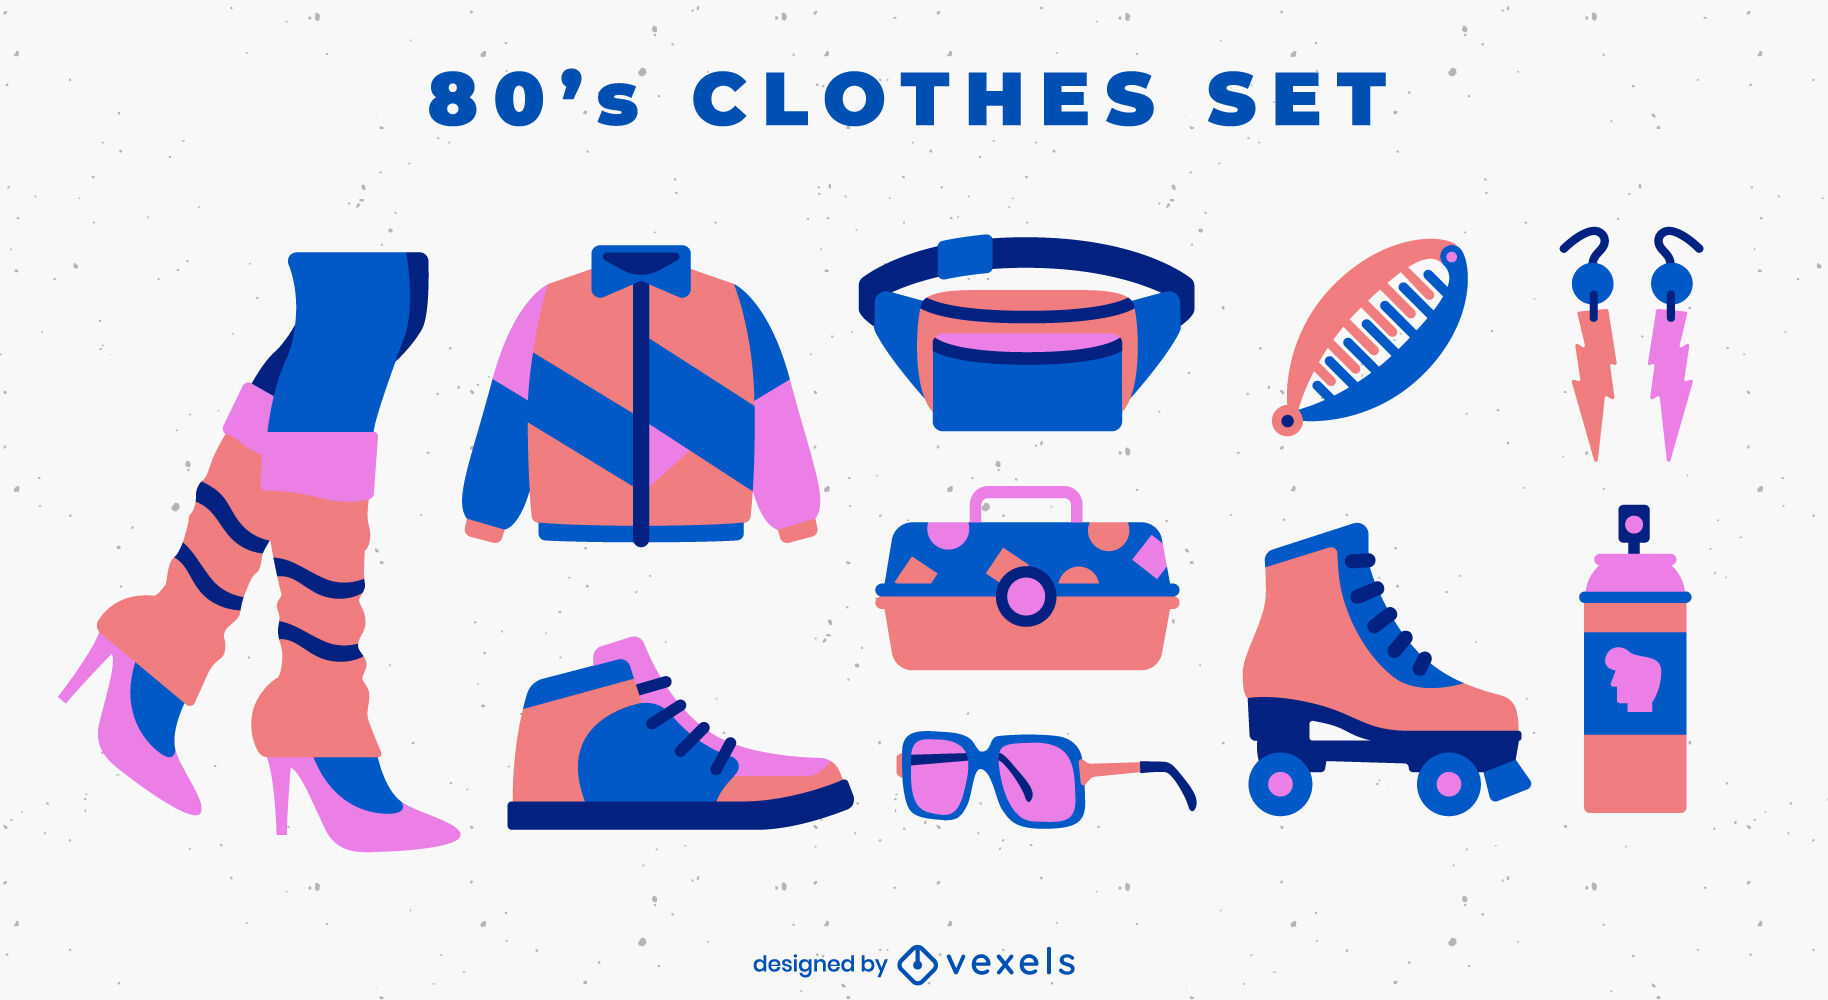 Retro 80's fashion and accesories set